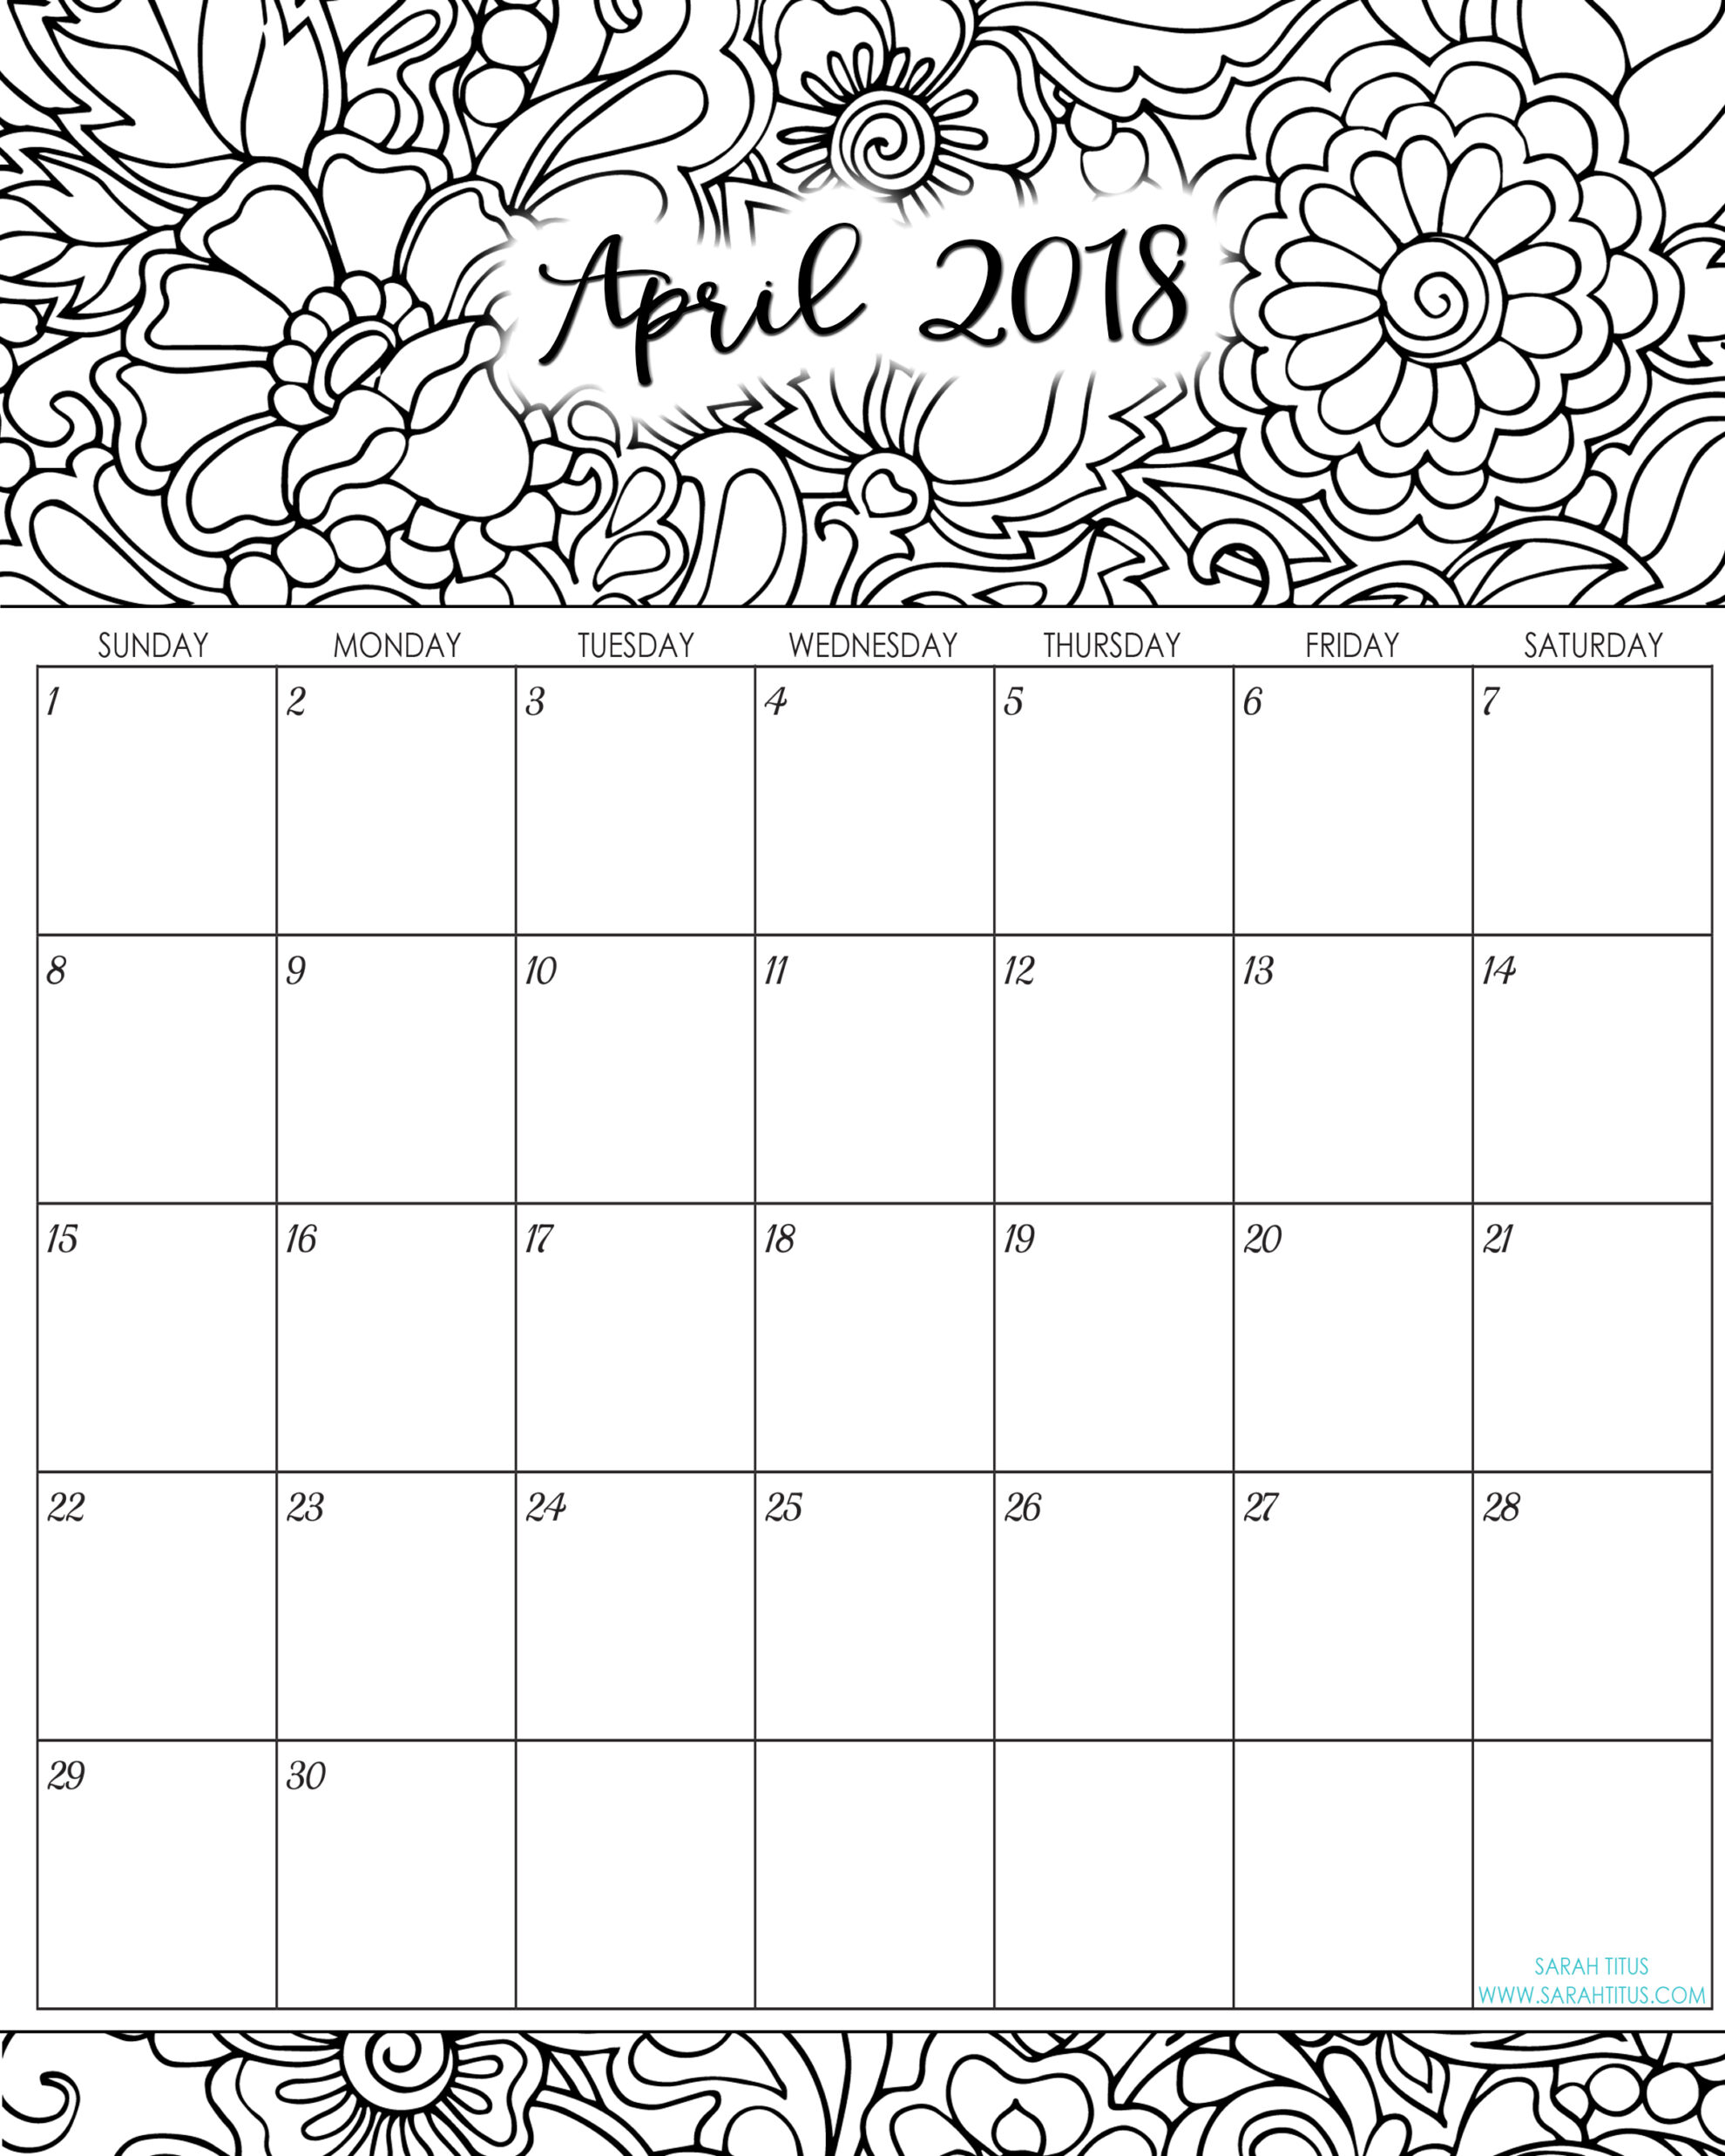 Calendar For April Printable : Monthly coloring calendars printables sarah titus